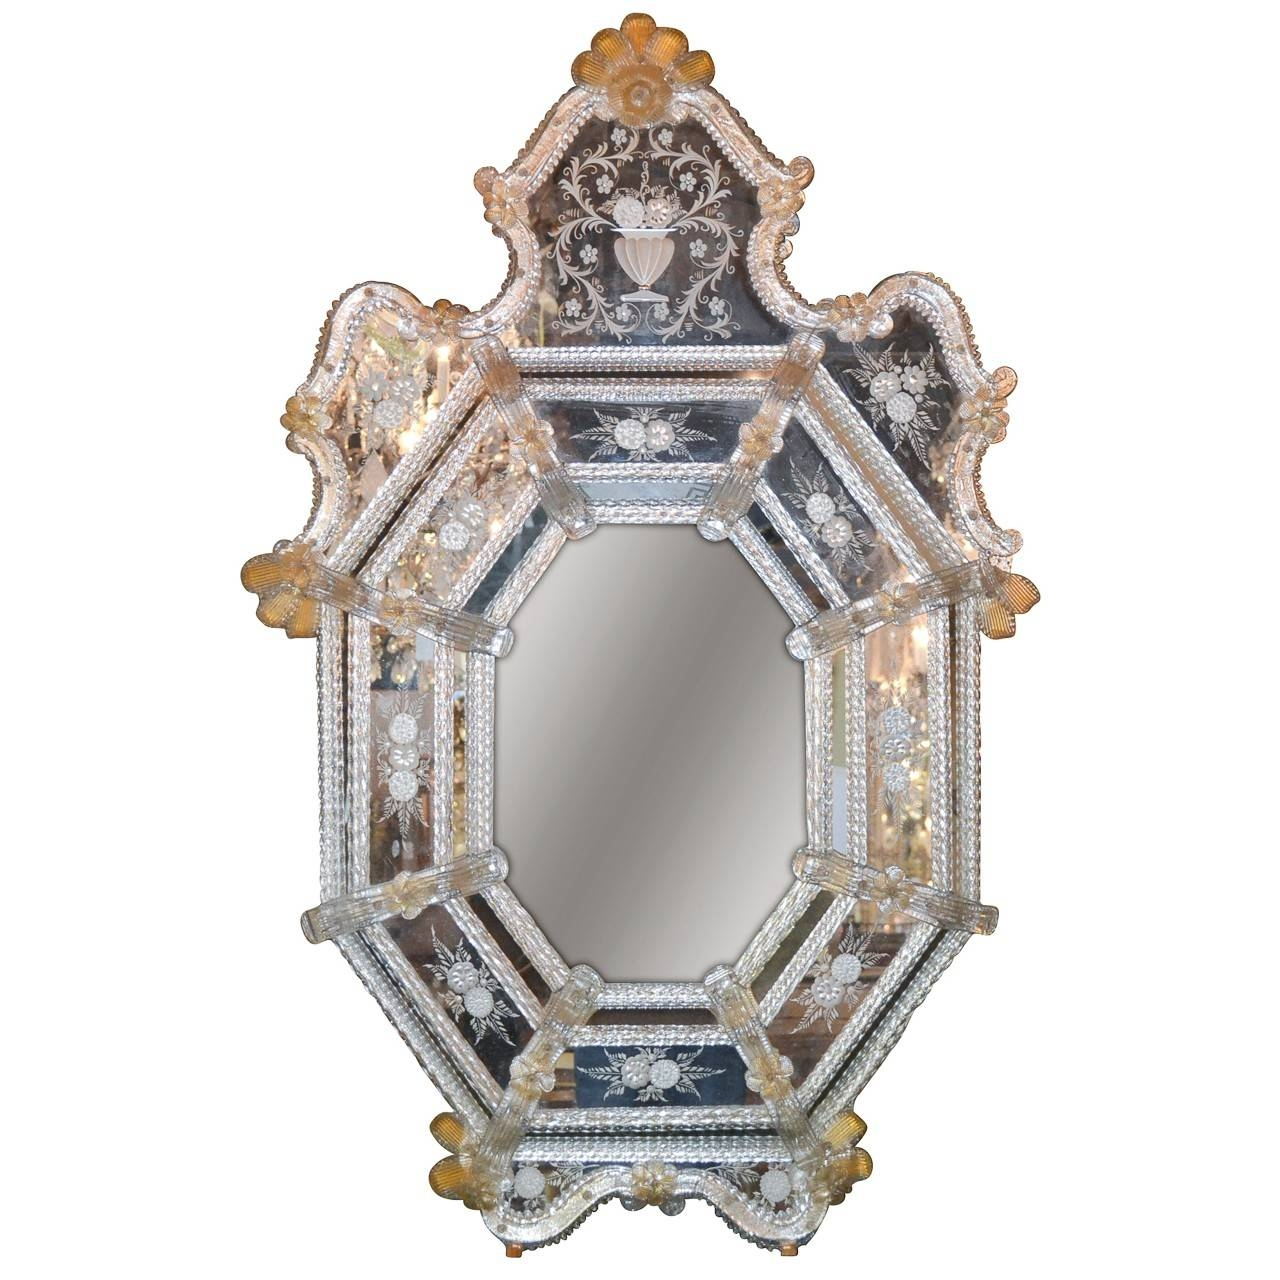 Beautiful Antique Venetian Etched Glass Mirror - Legacy Antiques regarding Venetian Etched Glass Mirrors (Image 5 of 15)